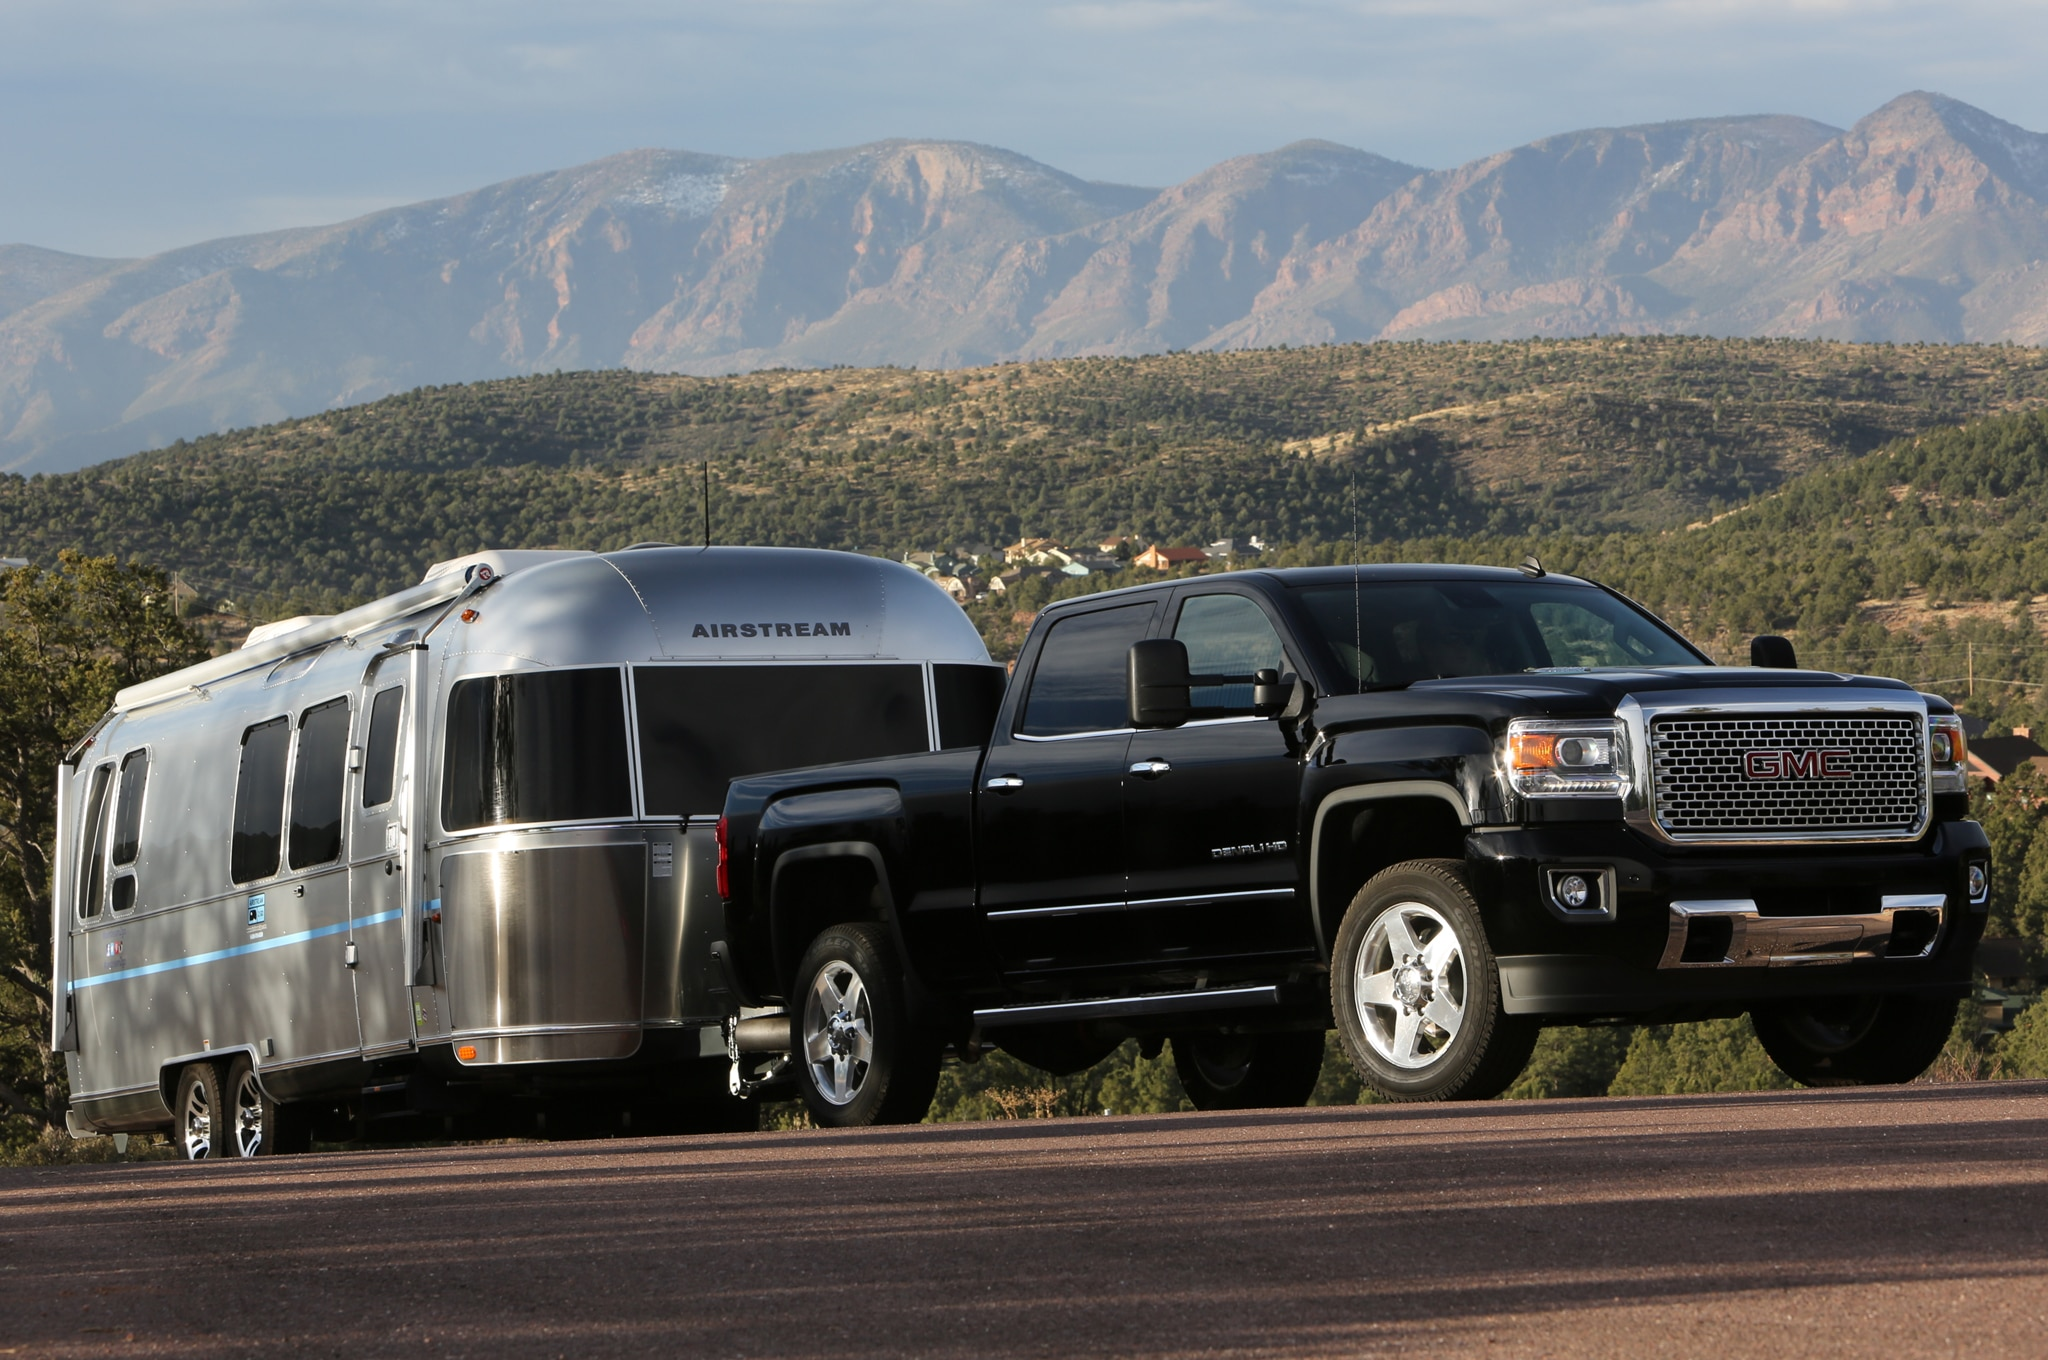 2015 GMC Sierra 2500HD Denali front view with airstream